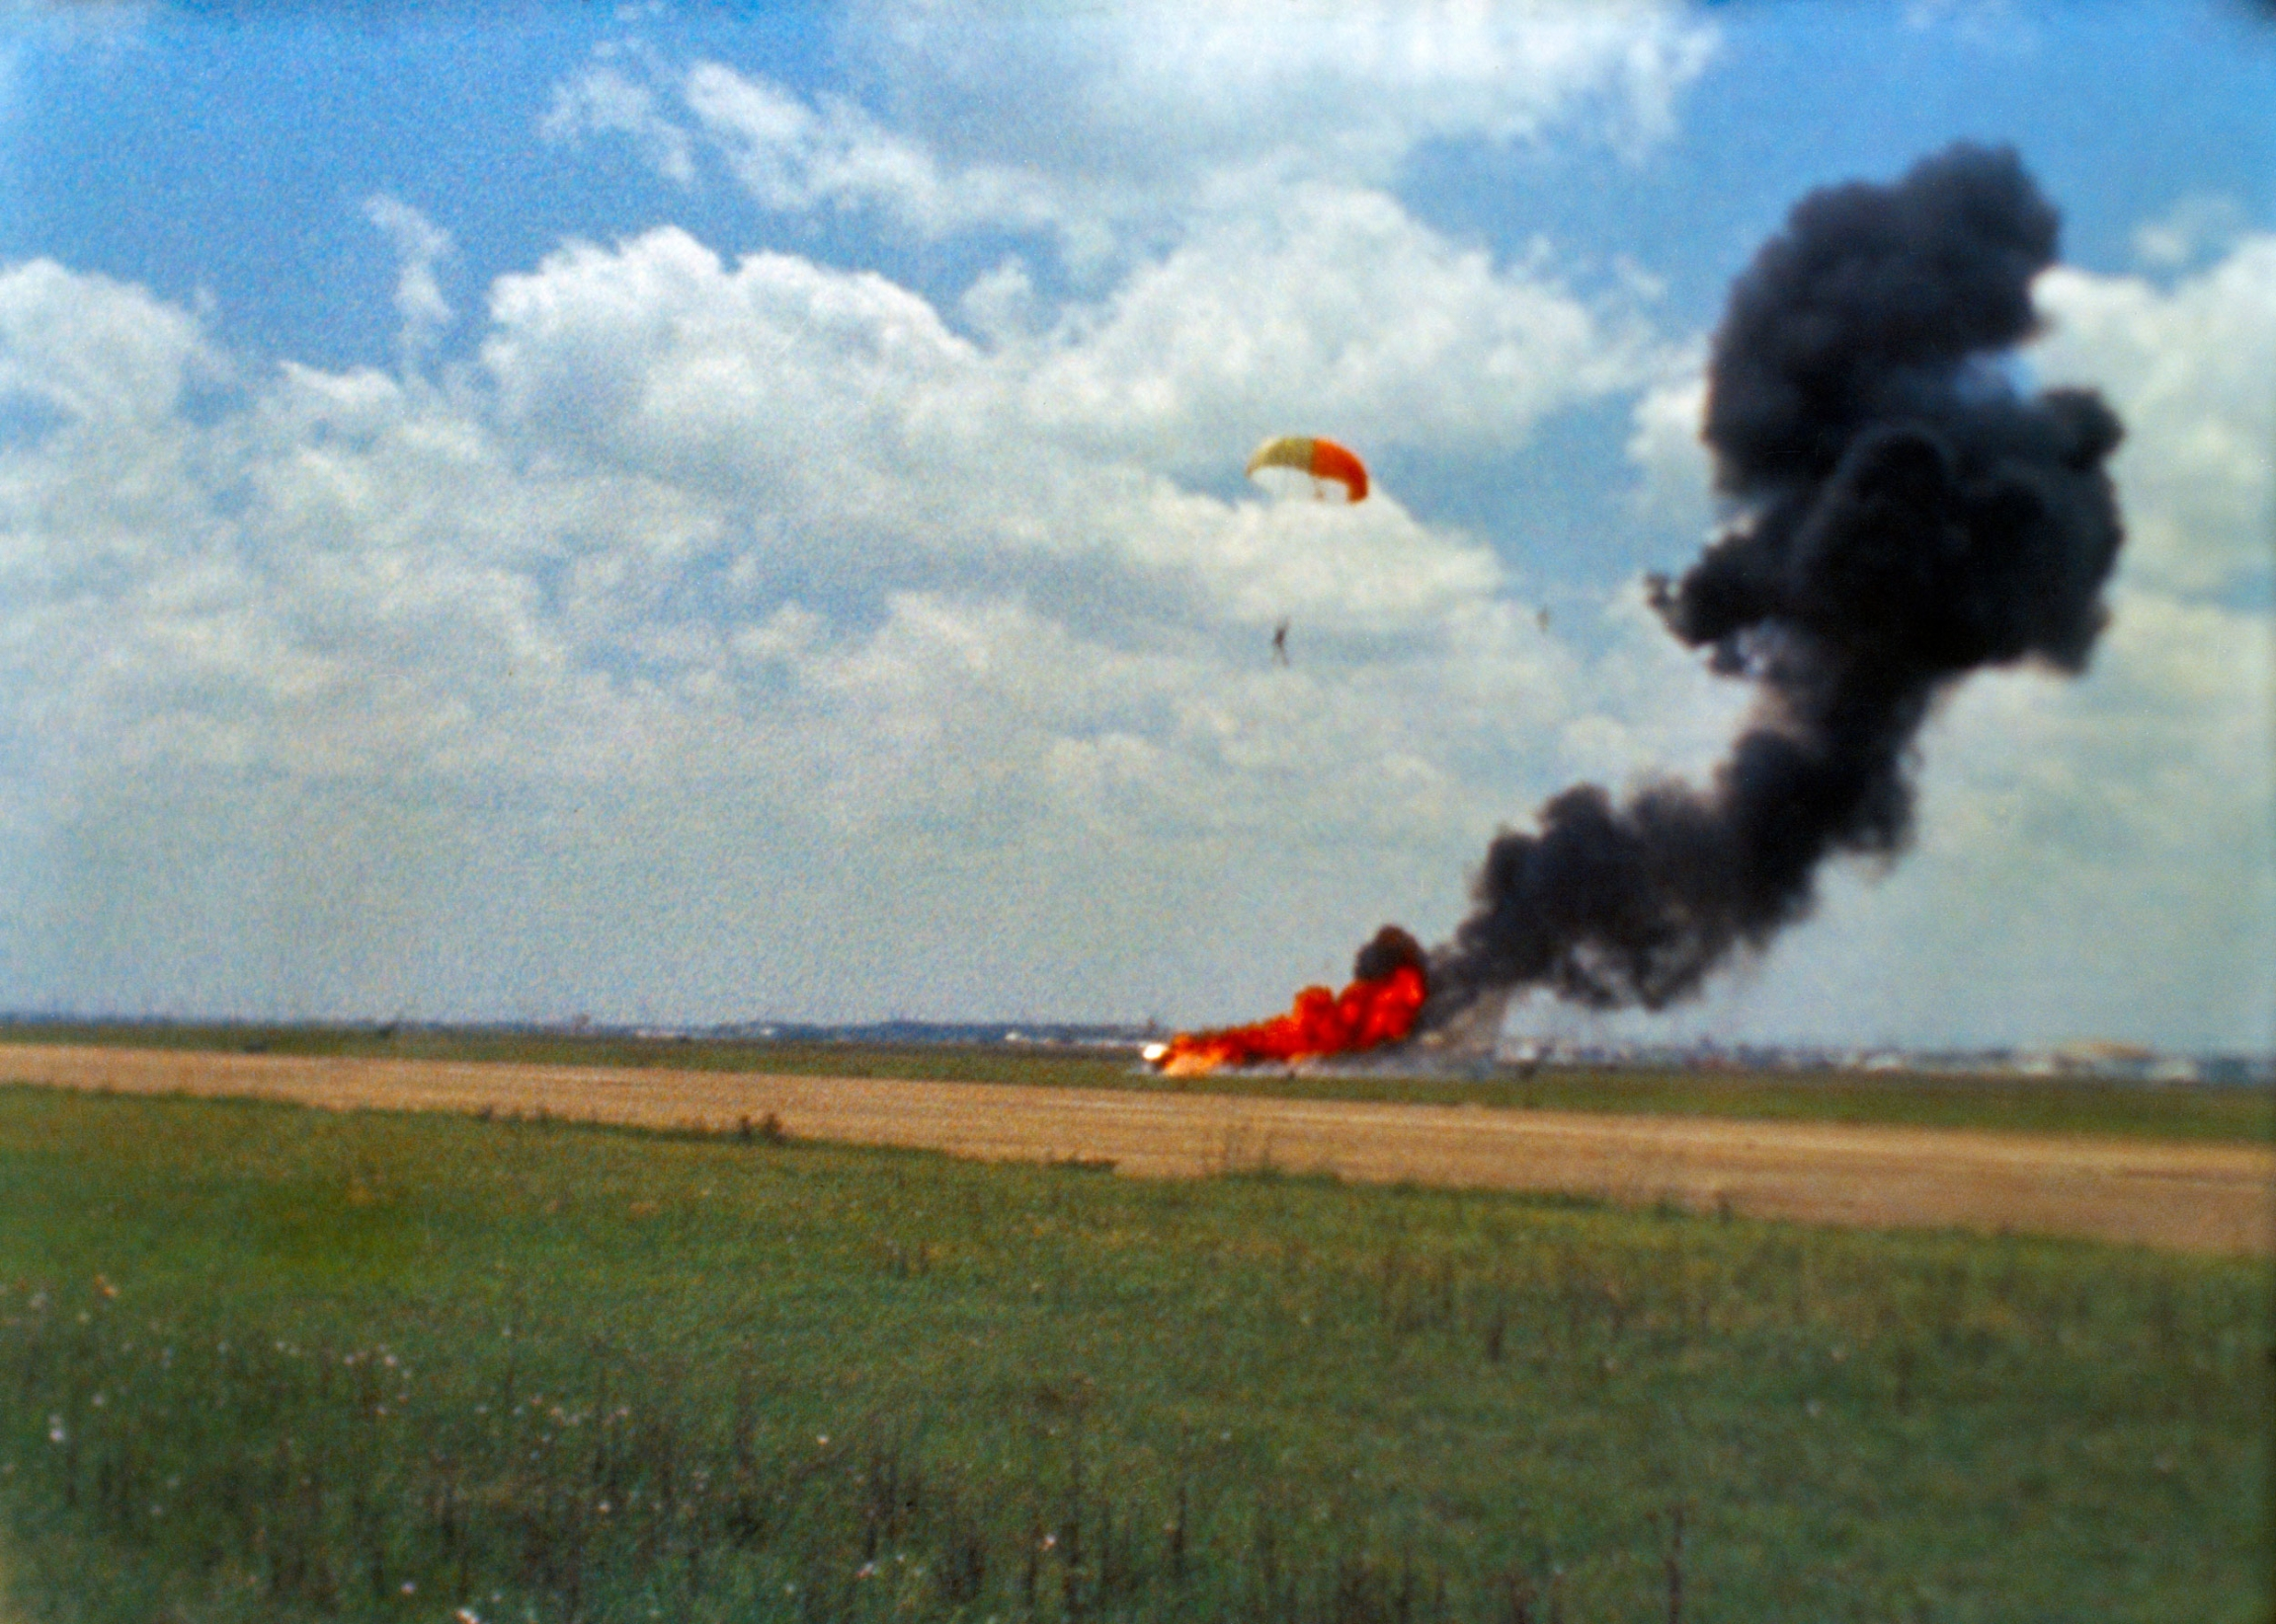 An airfield is shown with Neil Armstrong and his parachute landing.